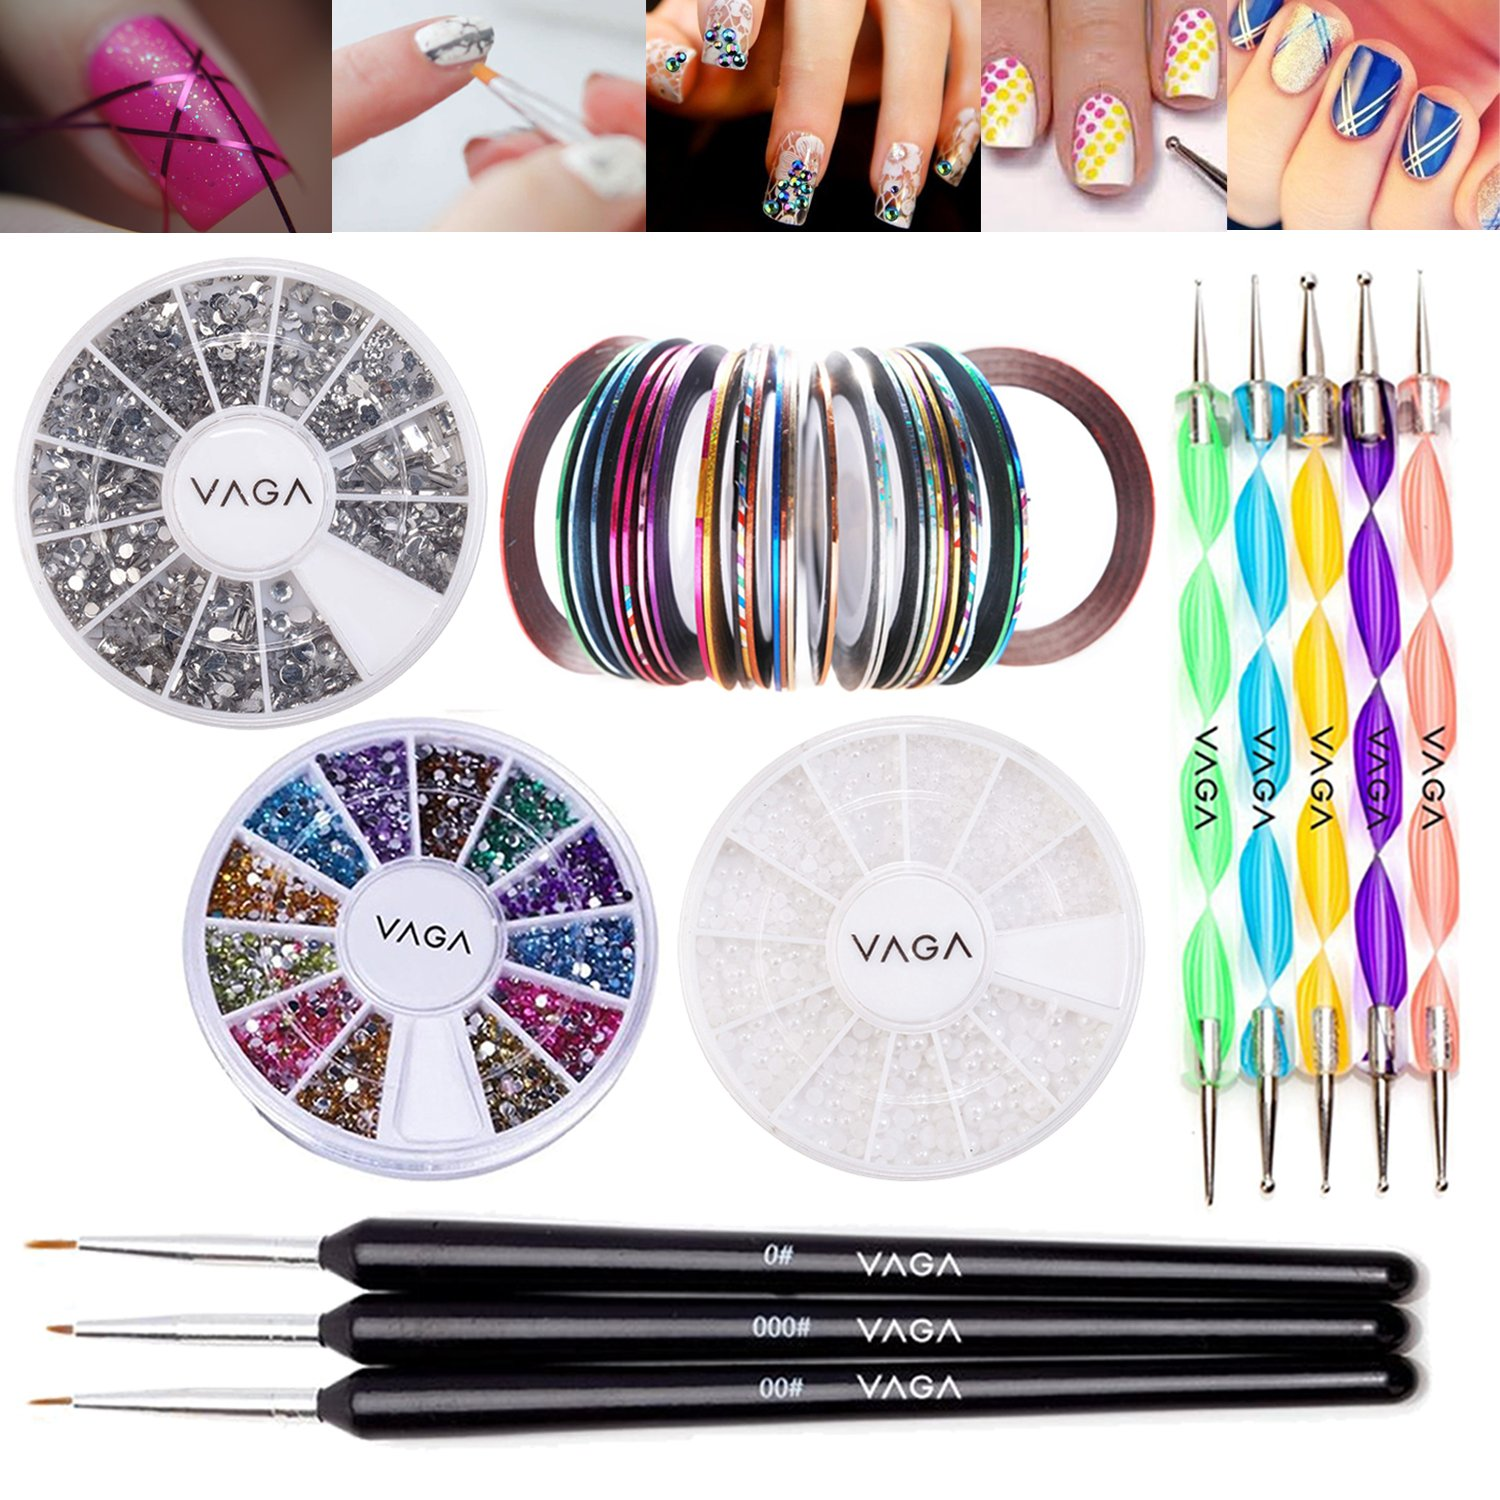 Amazon.com: Vaga Professional Nail Art Decorations Tools Kit (6 ...